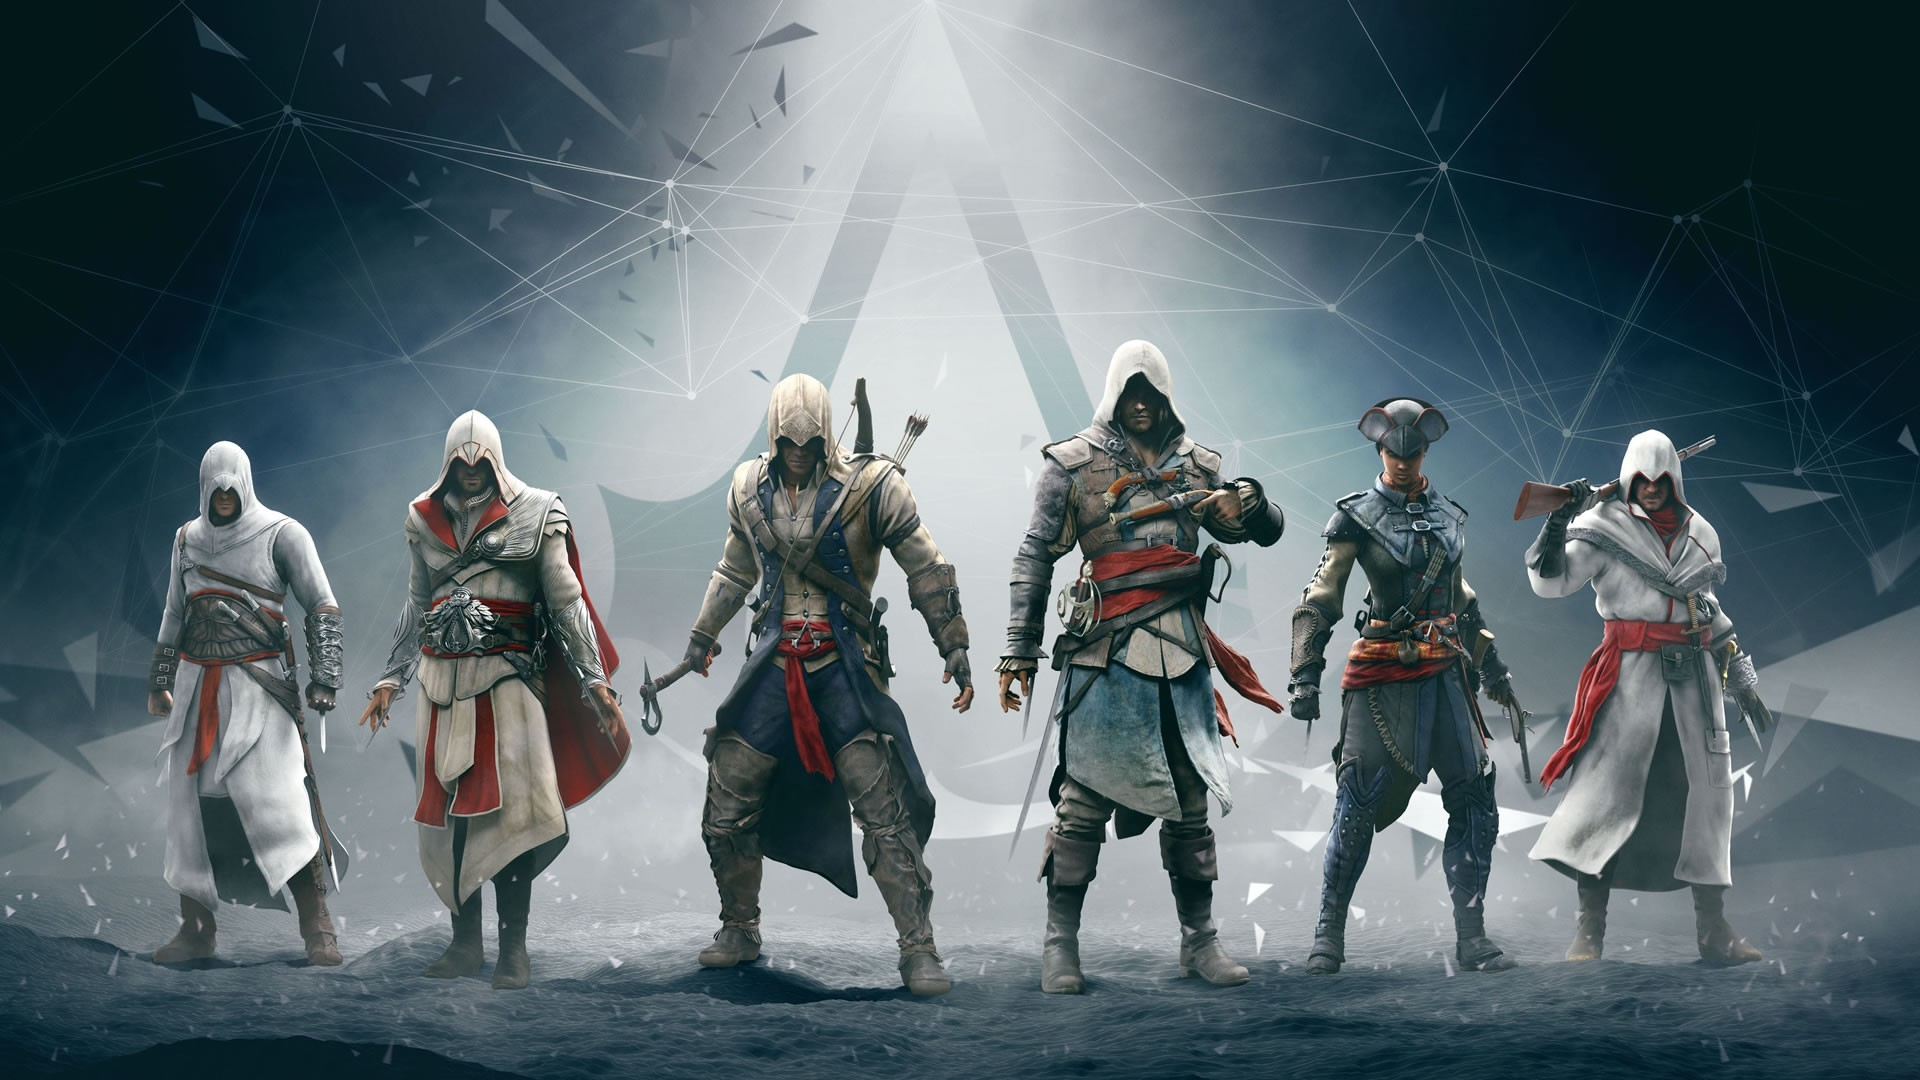 50 Assassin Creed Hd Wallpapers 591 Assassin Creed Hd Wallpapers